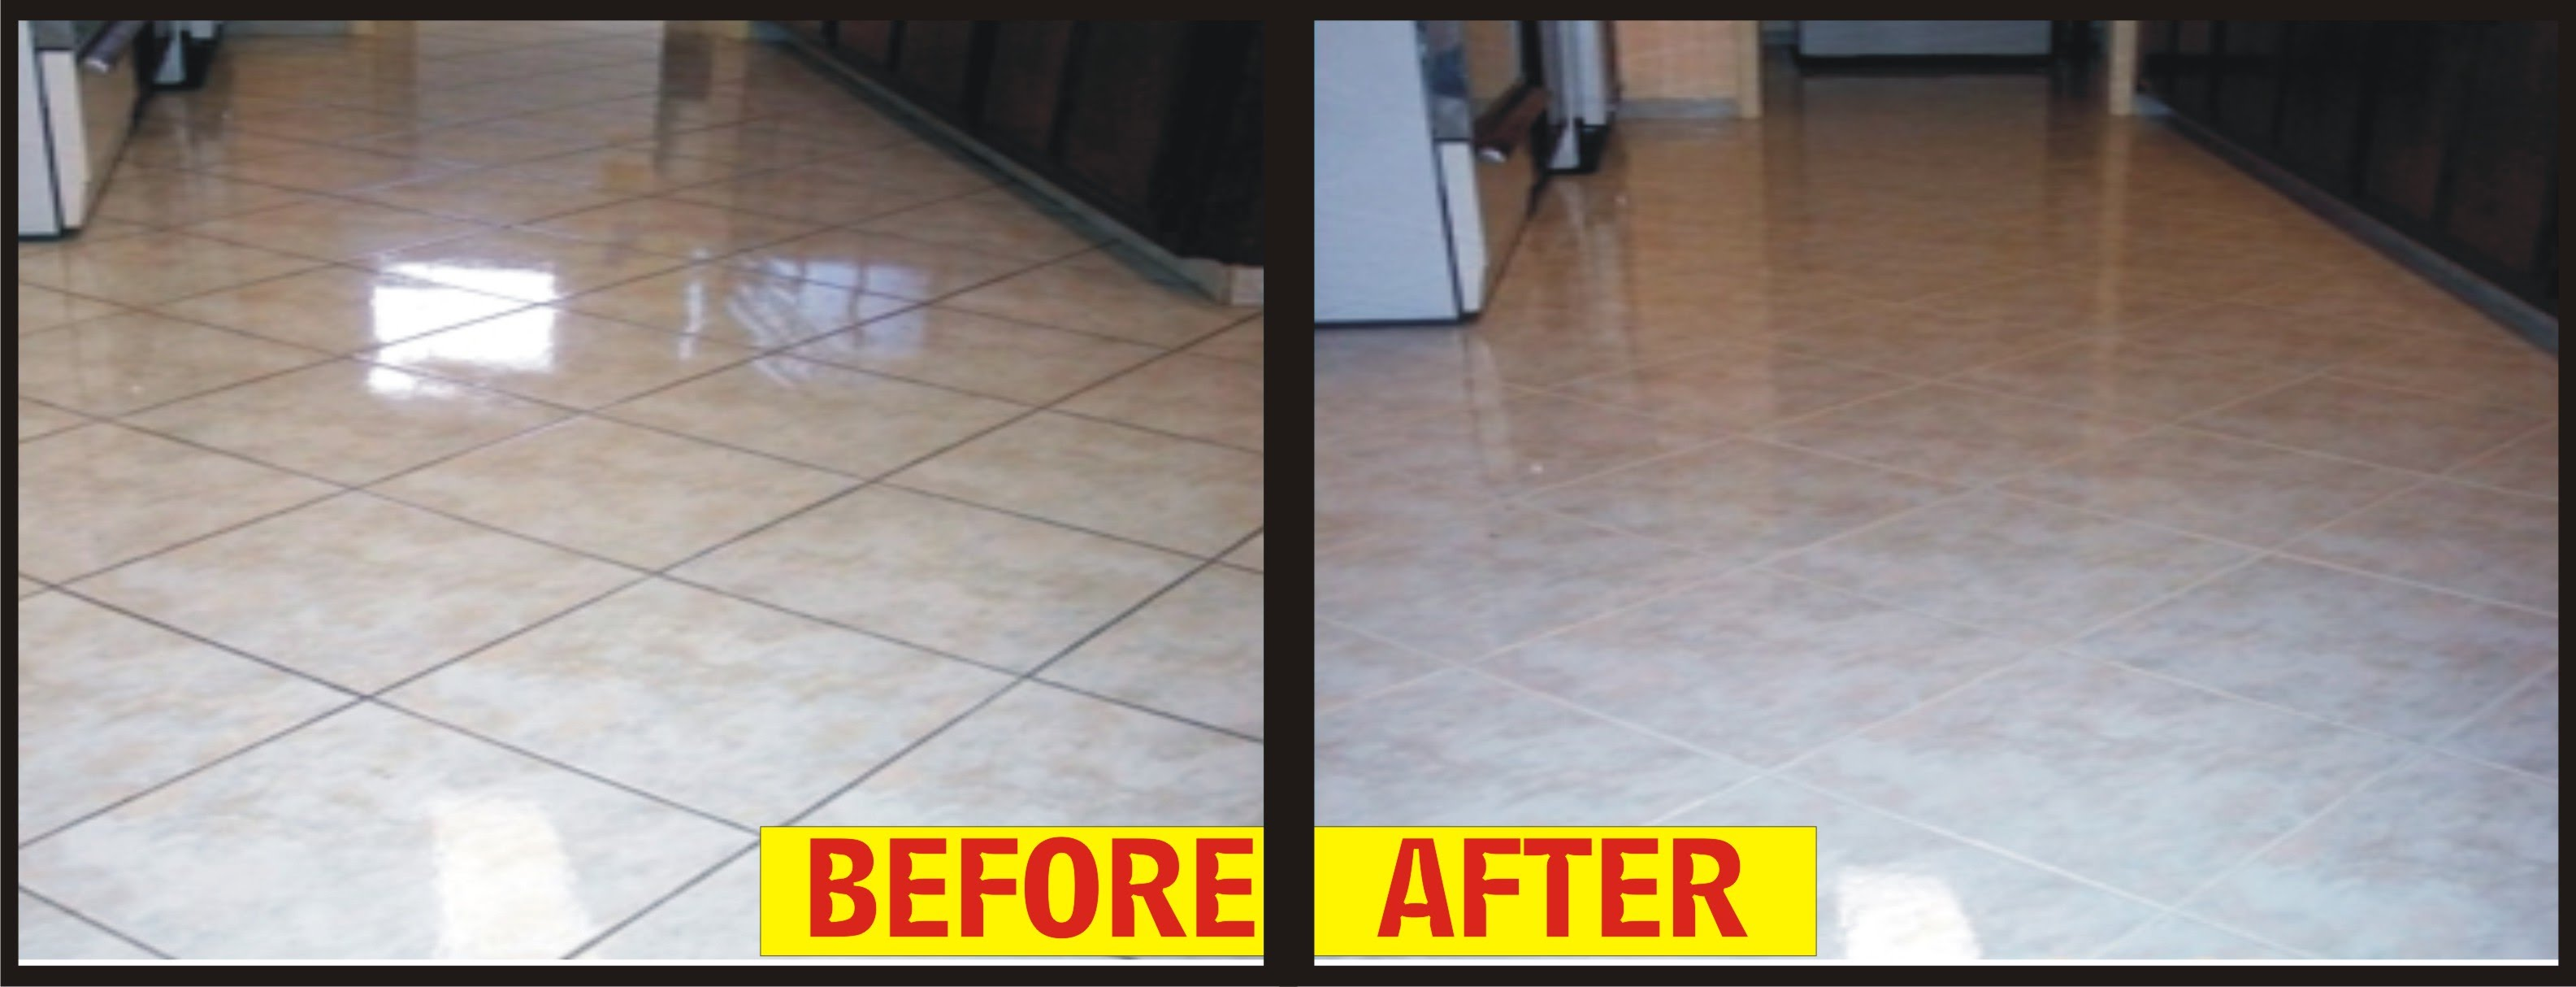 Tile grout cleaning tile grout cleaning carpet cleaner how much to clean tile and grout floor although many of you have attempted to clean the tile floor and remove the black unhygienic greasedirt off the dailygadgetfo Gallery